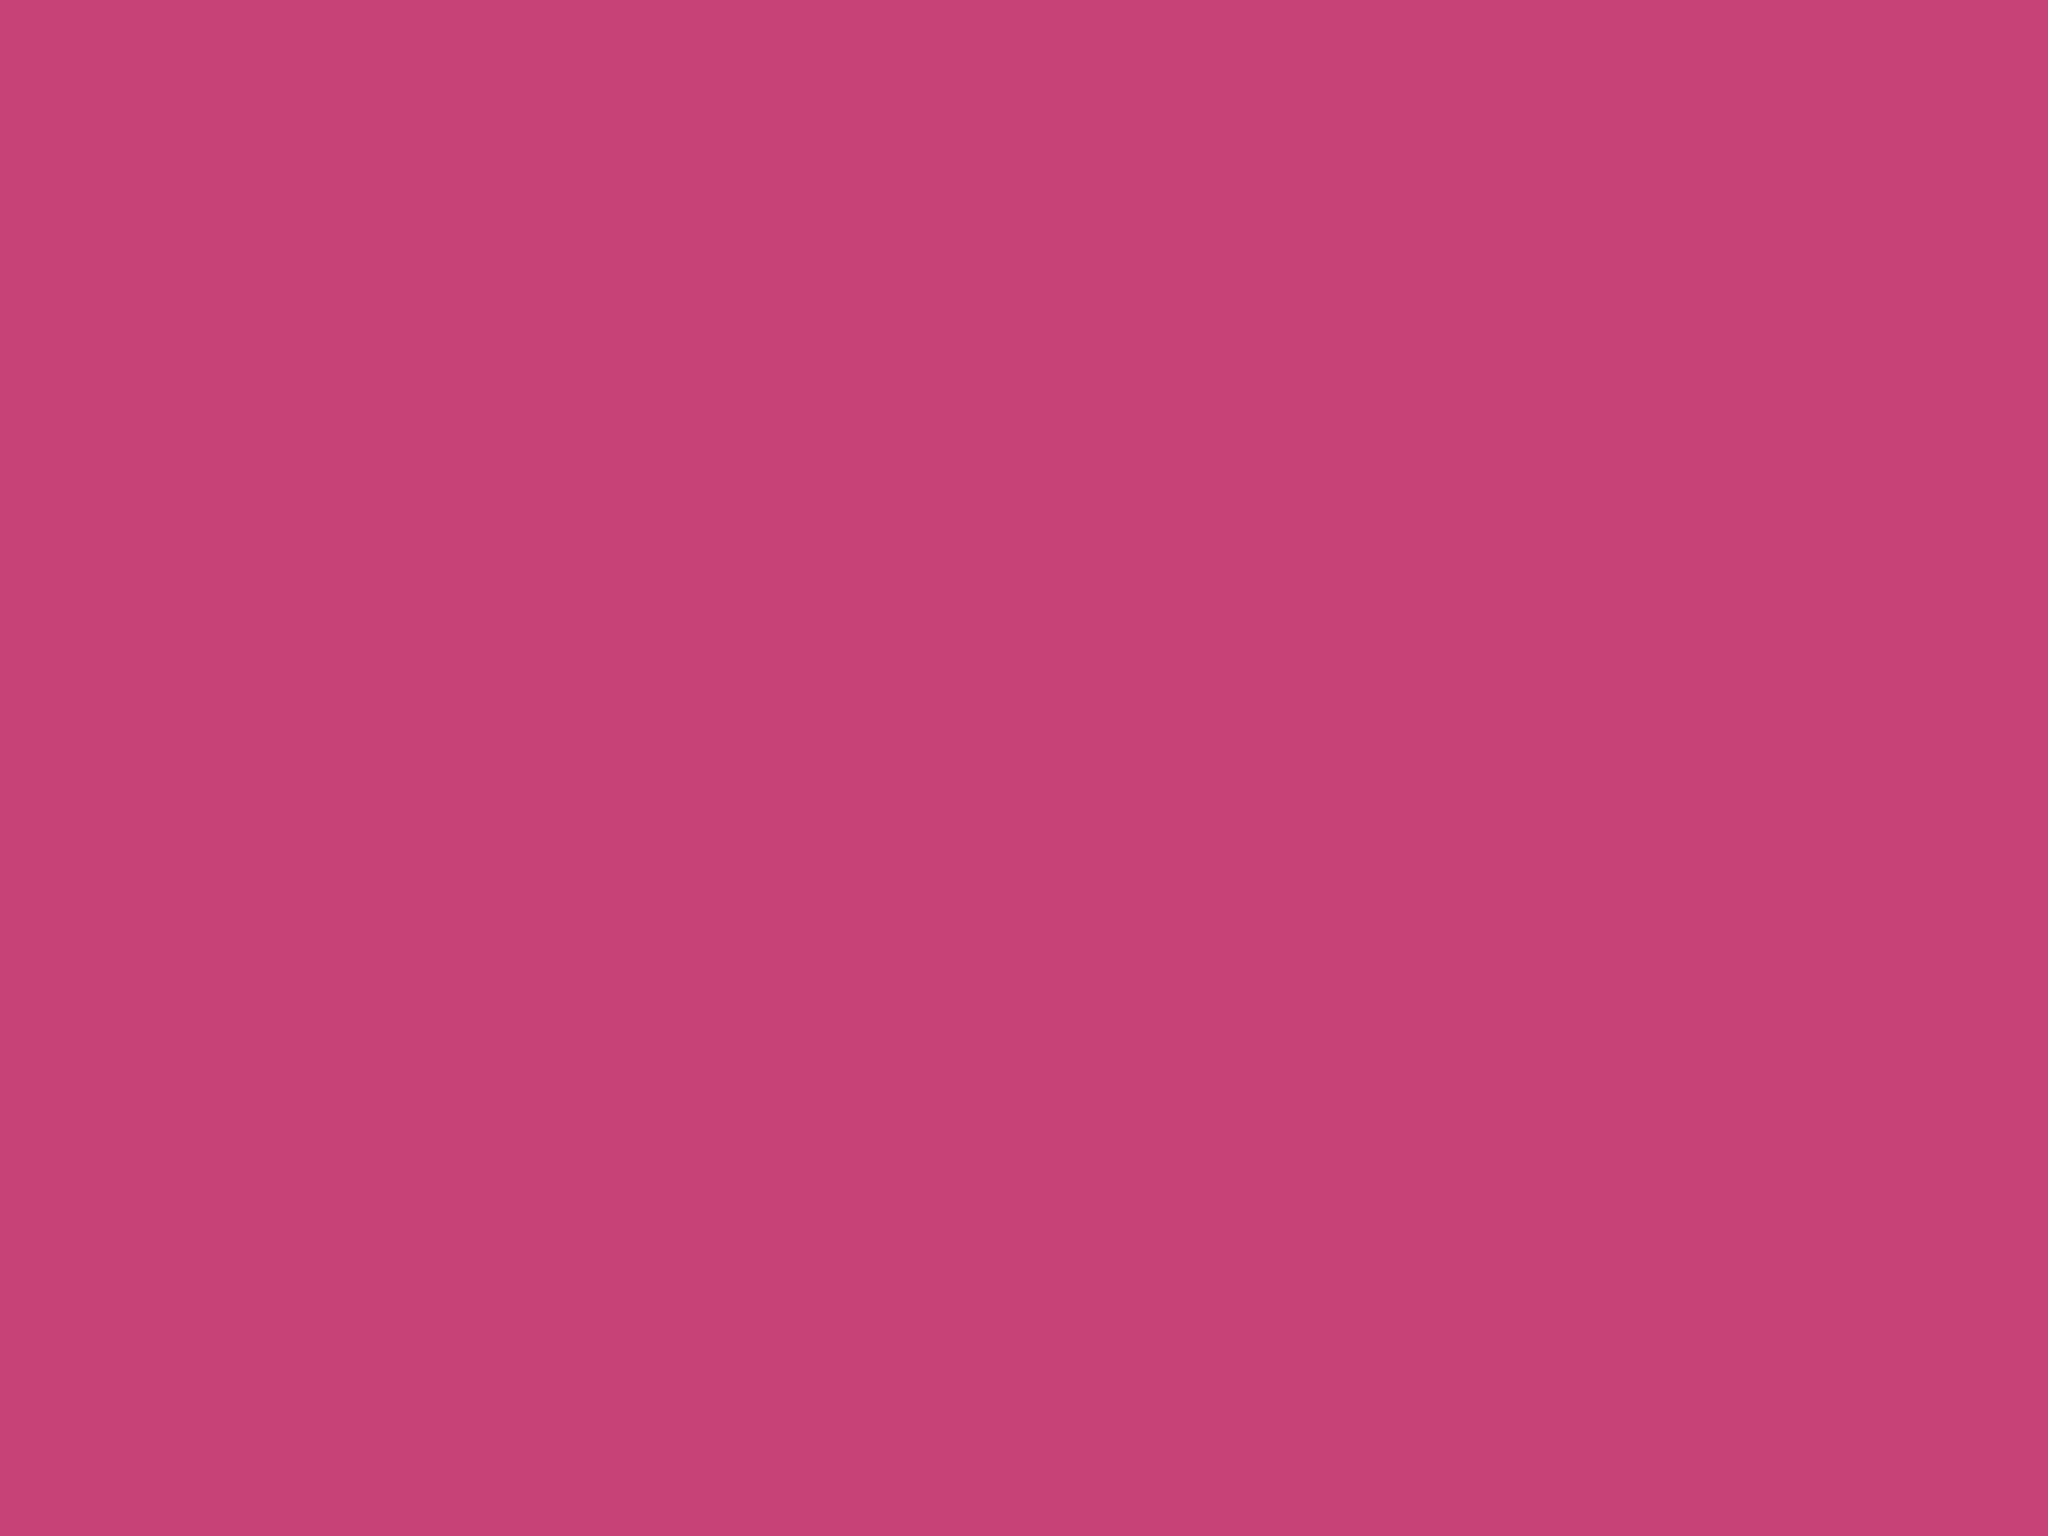 2048x1536 Fuchsia Rose Solid Color Background